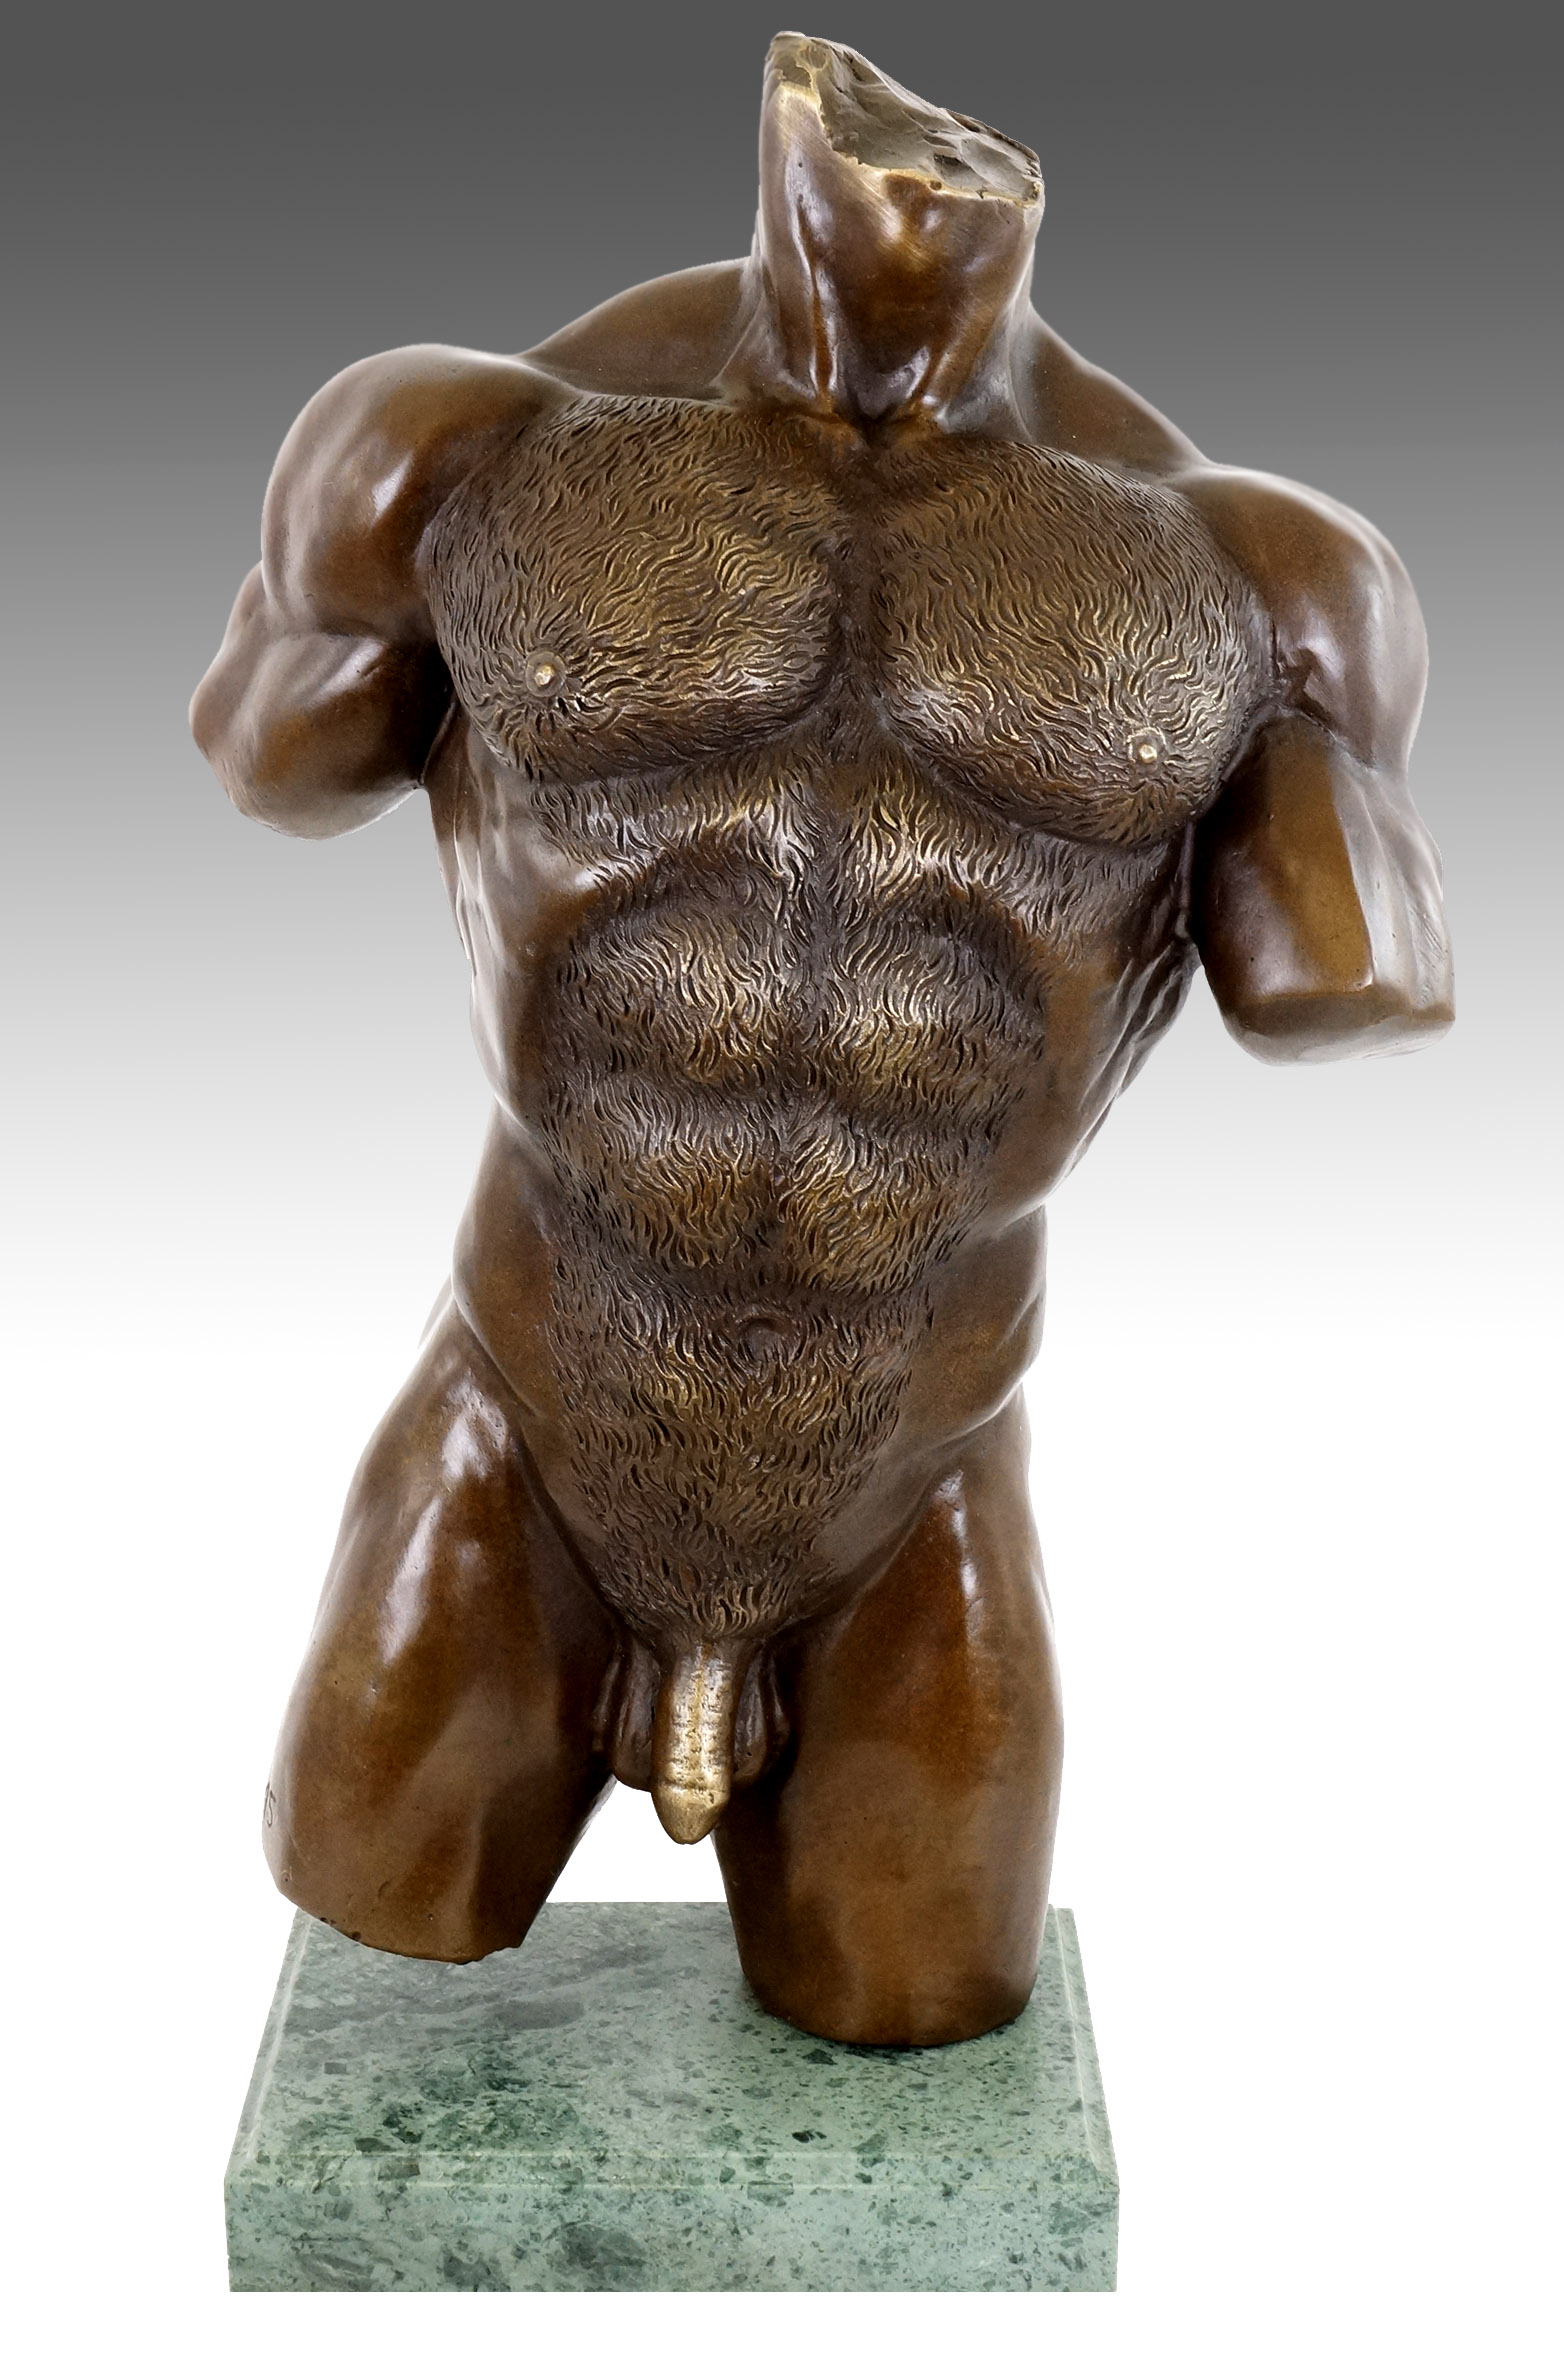 Amusing erotic nude muscle confirm. All